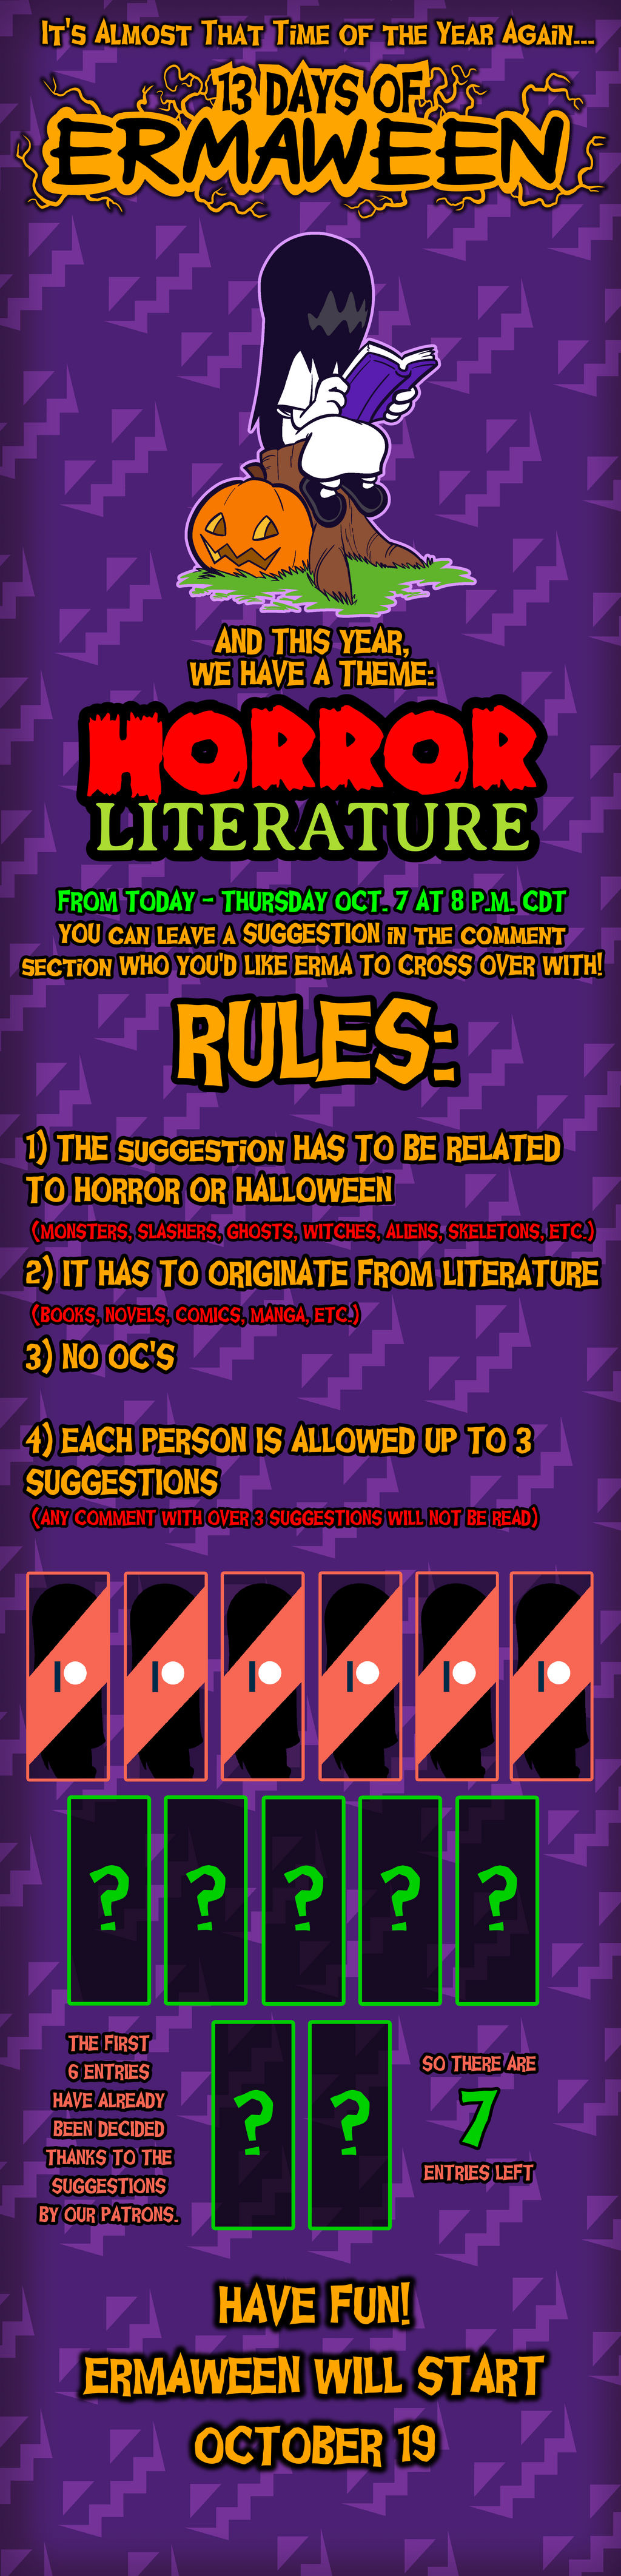 Ermaween 2021 Suggestion Poll (READ RULES PLEASE)